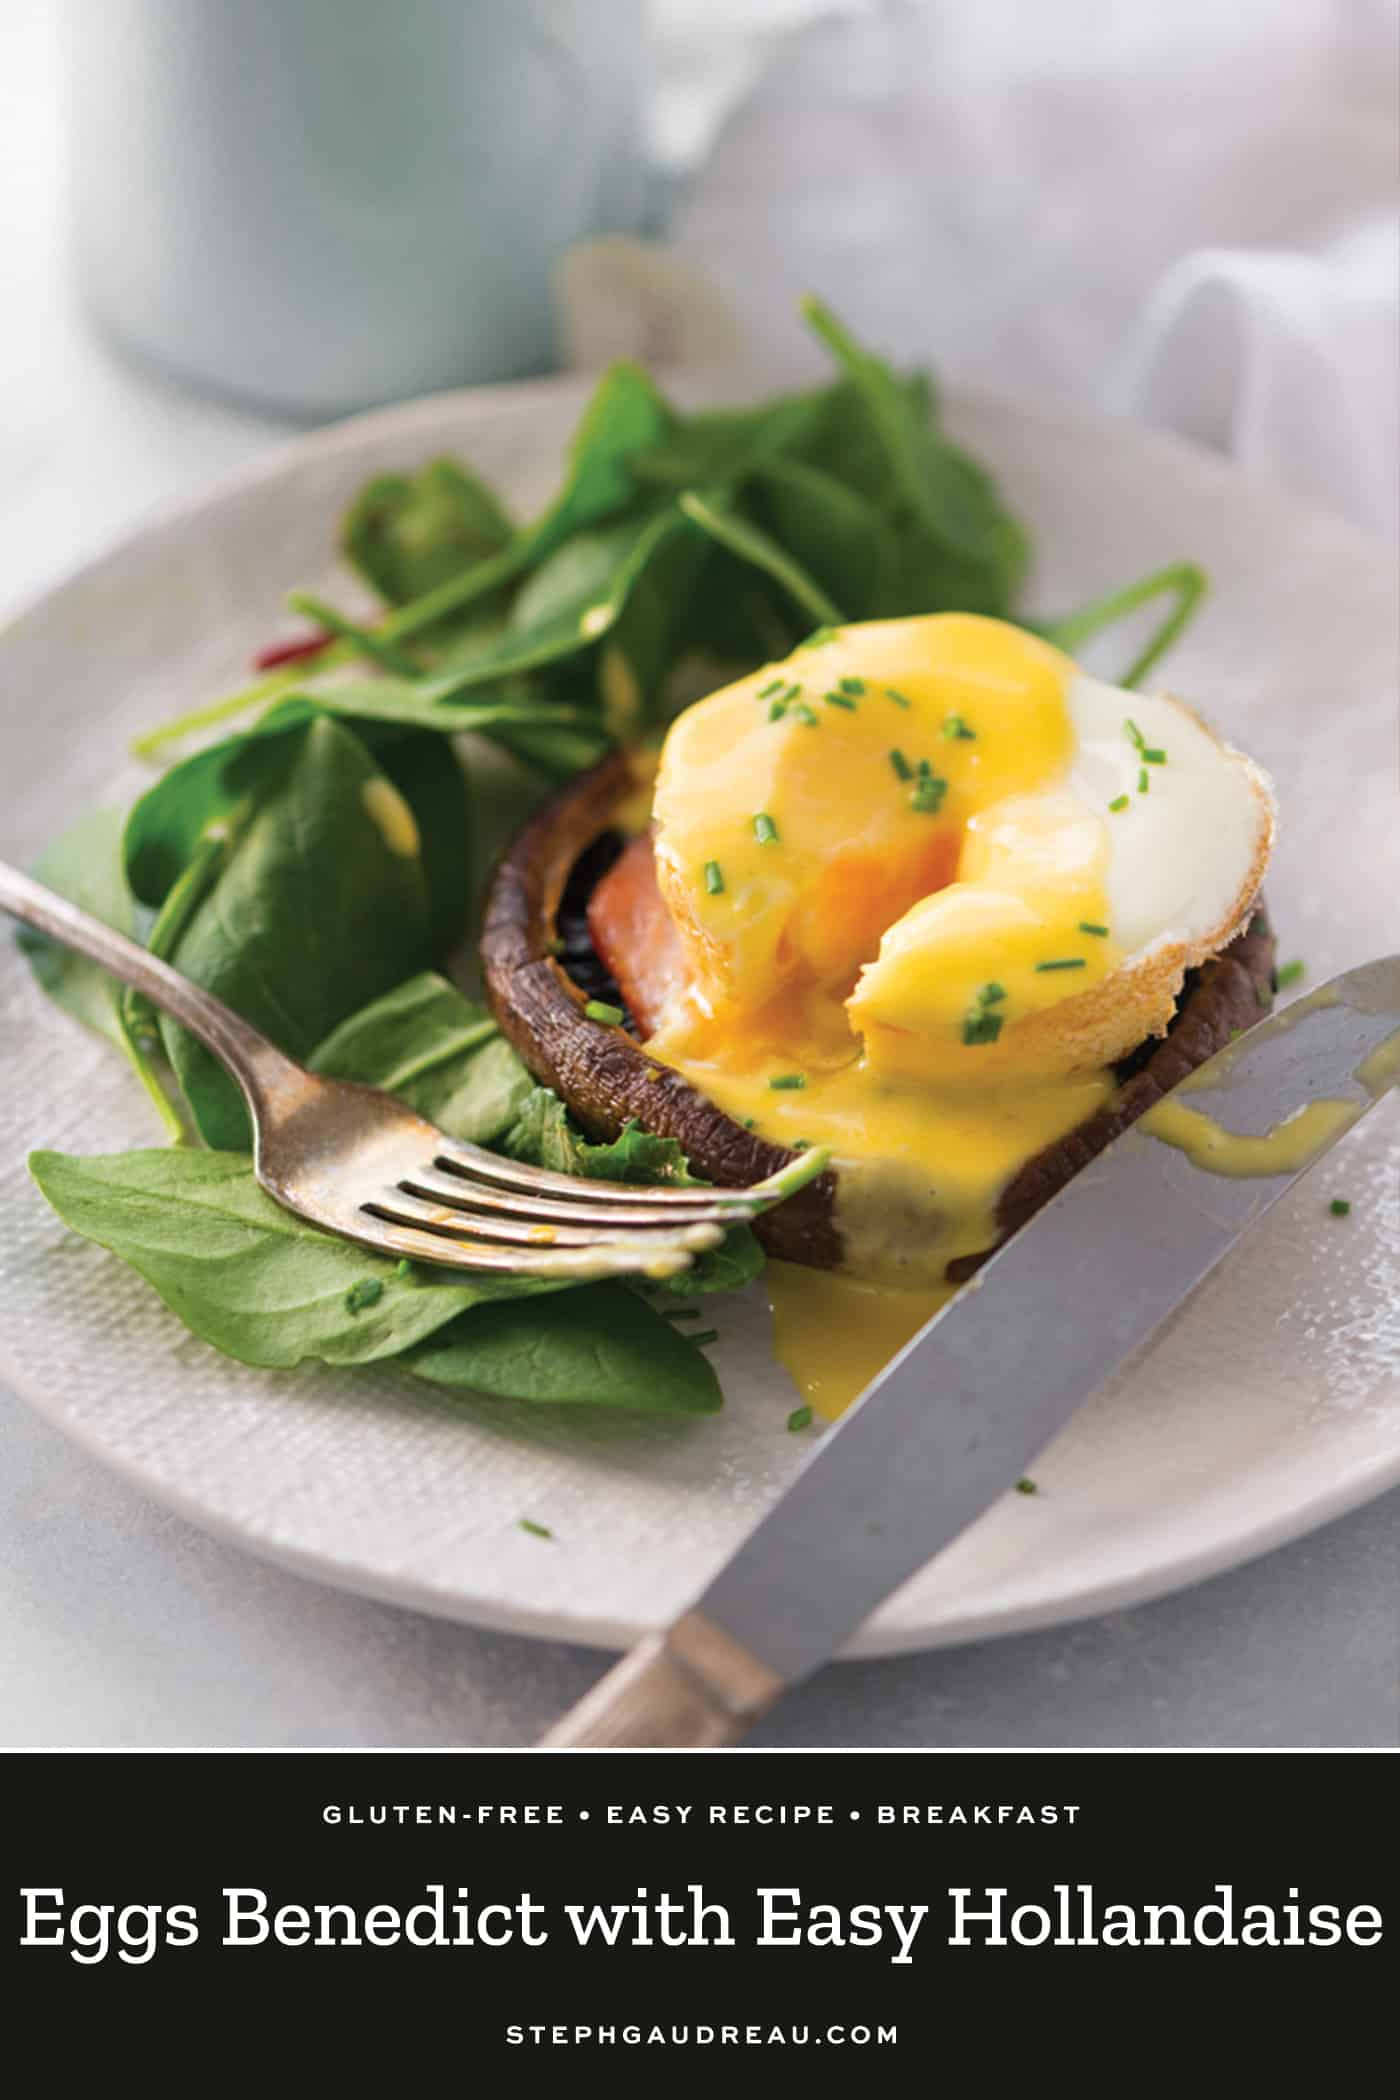 gluten free eggs benedict on a mushroom cap drizzled with hollandaise sauce